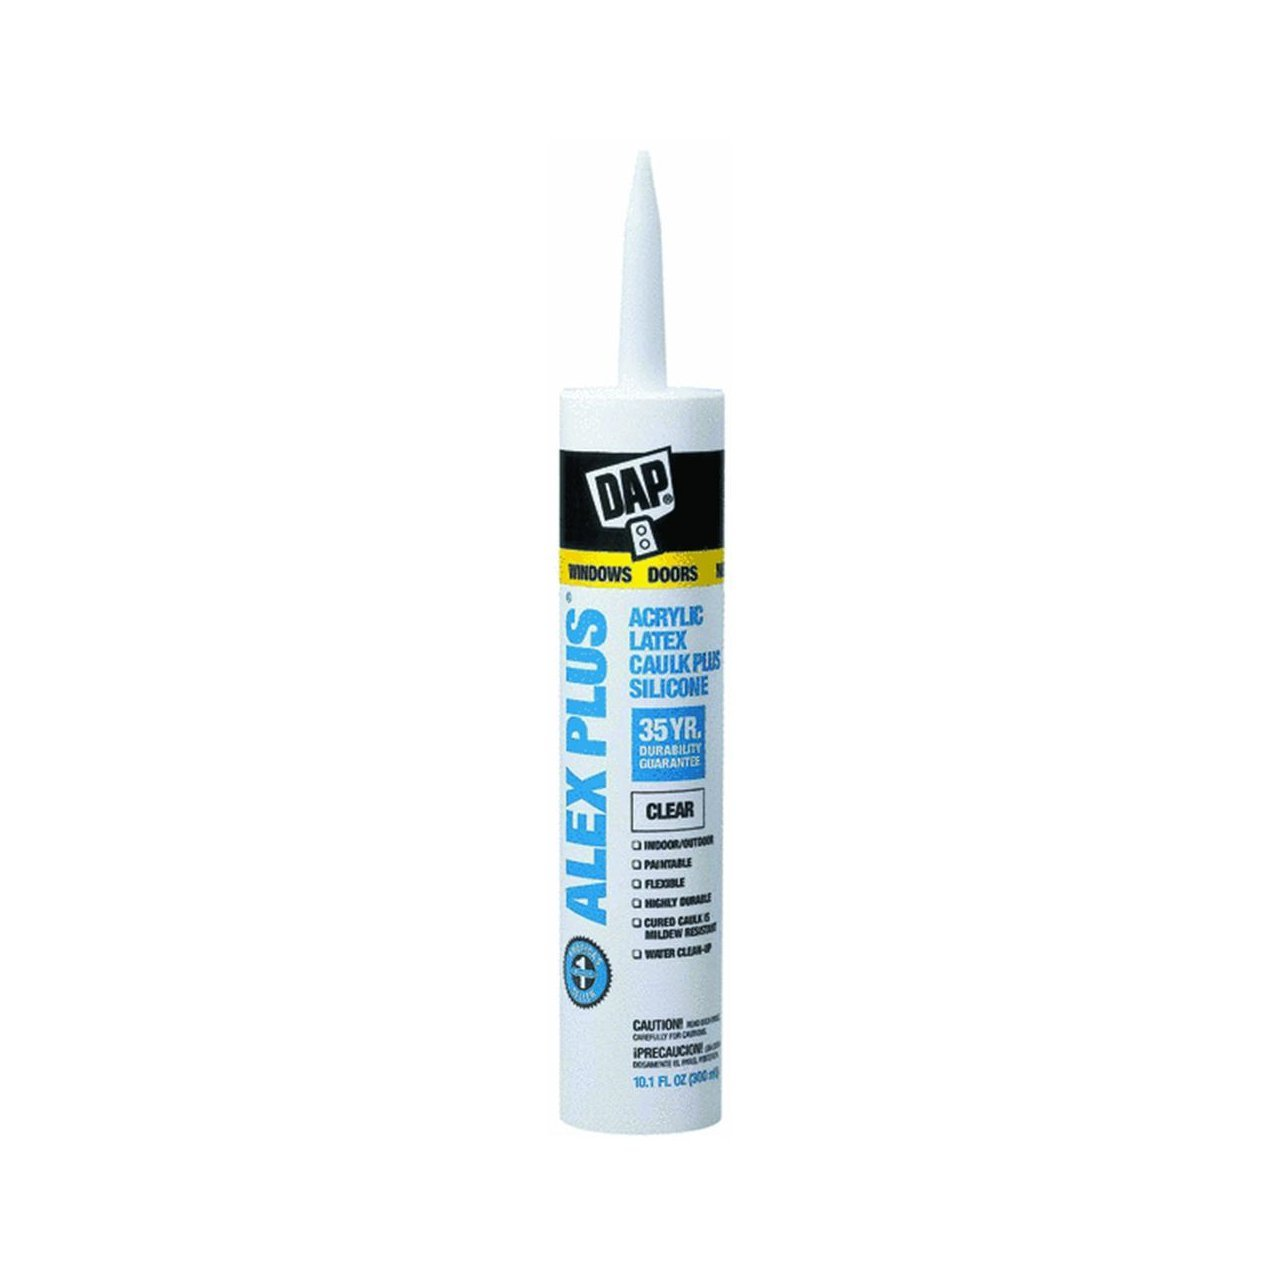 Dap® 18156 Alex Plus® Acrylic Latex Caulk Plus Silicone, 10.1 Oz, Clear